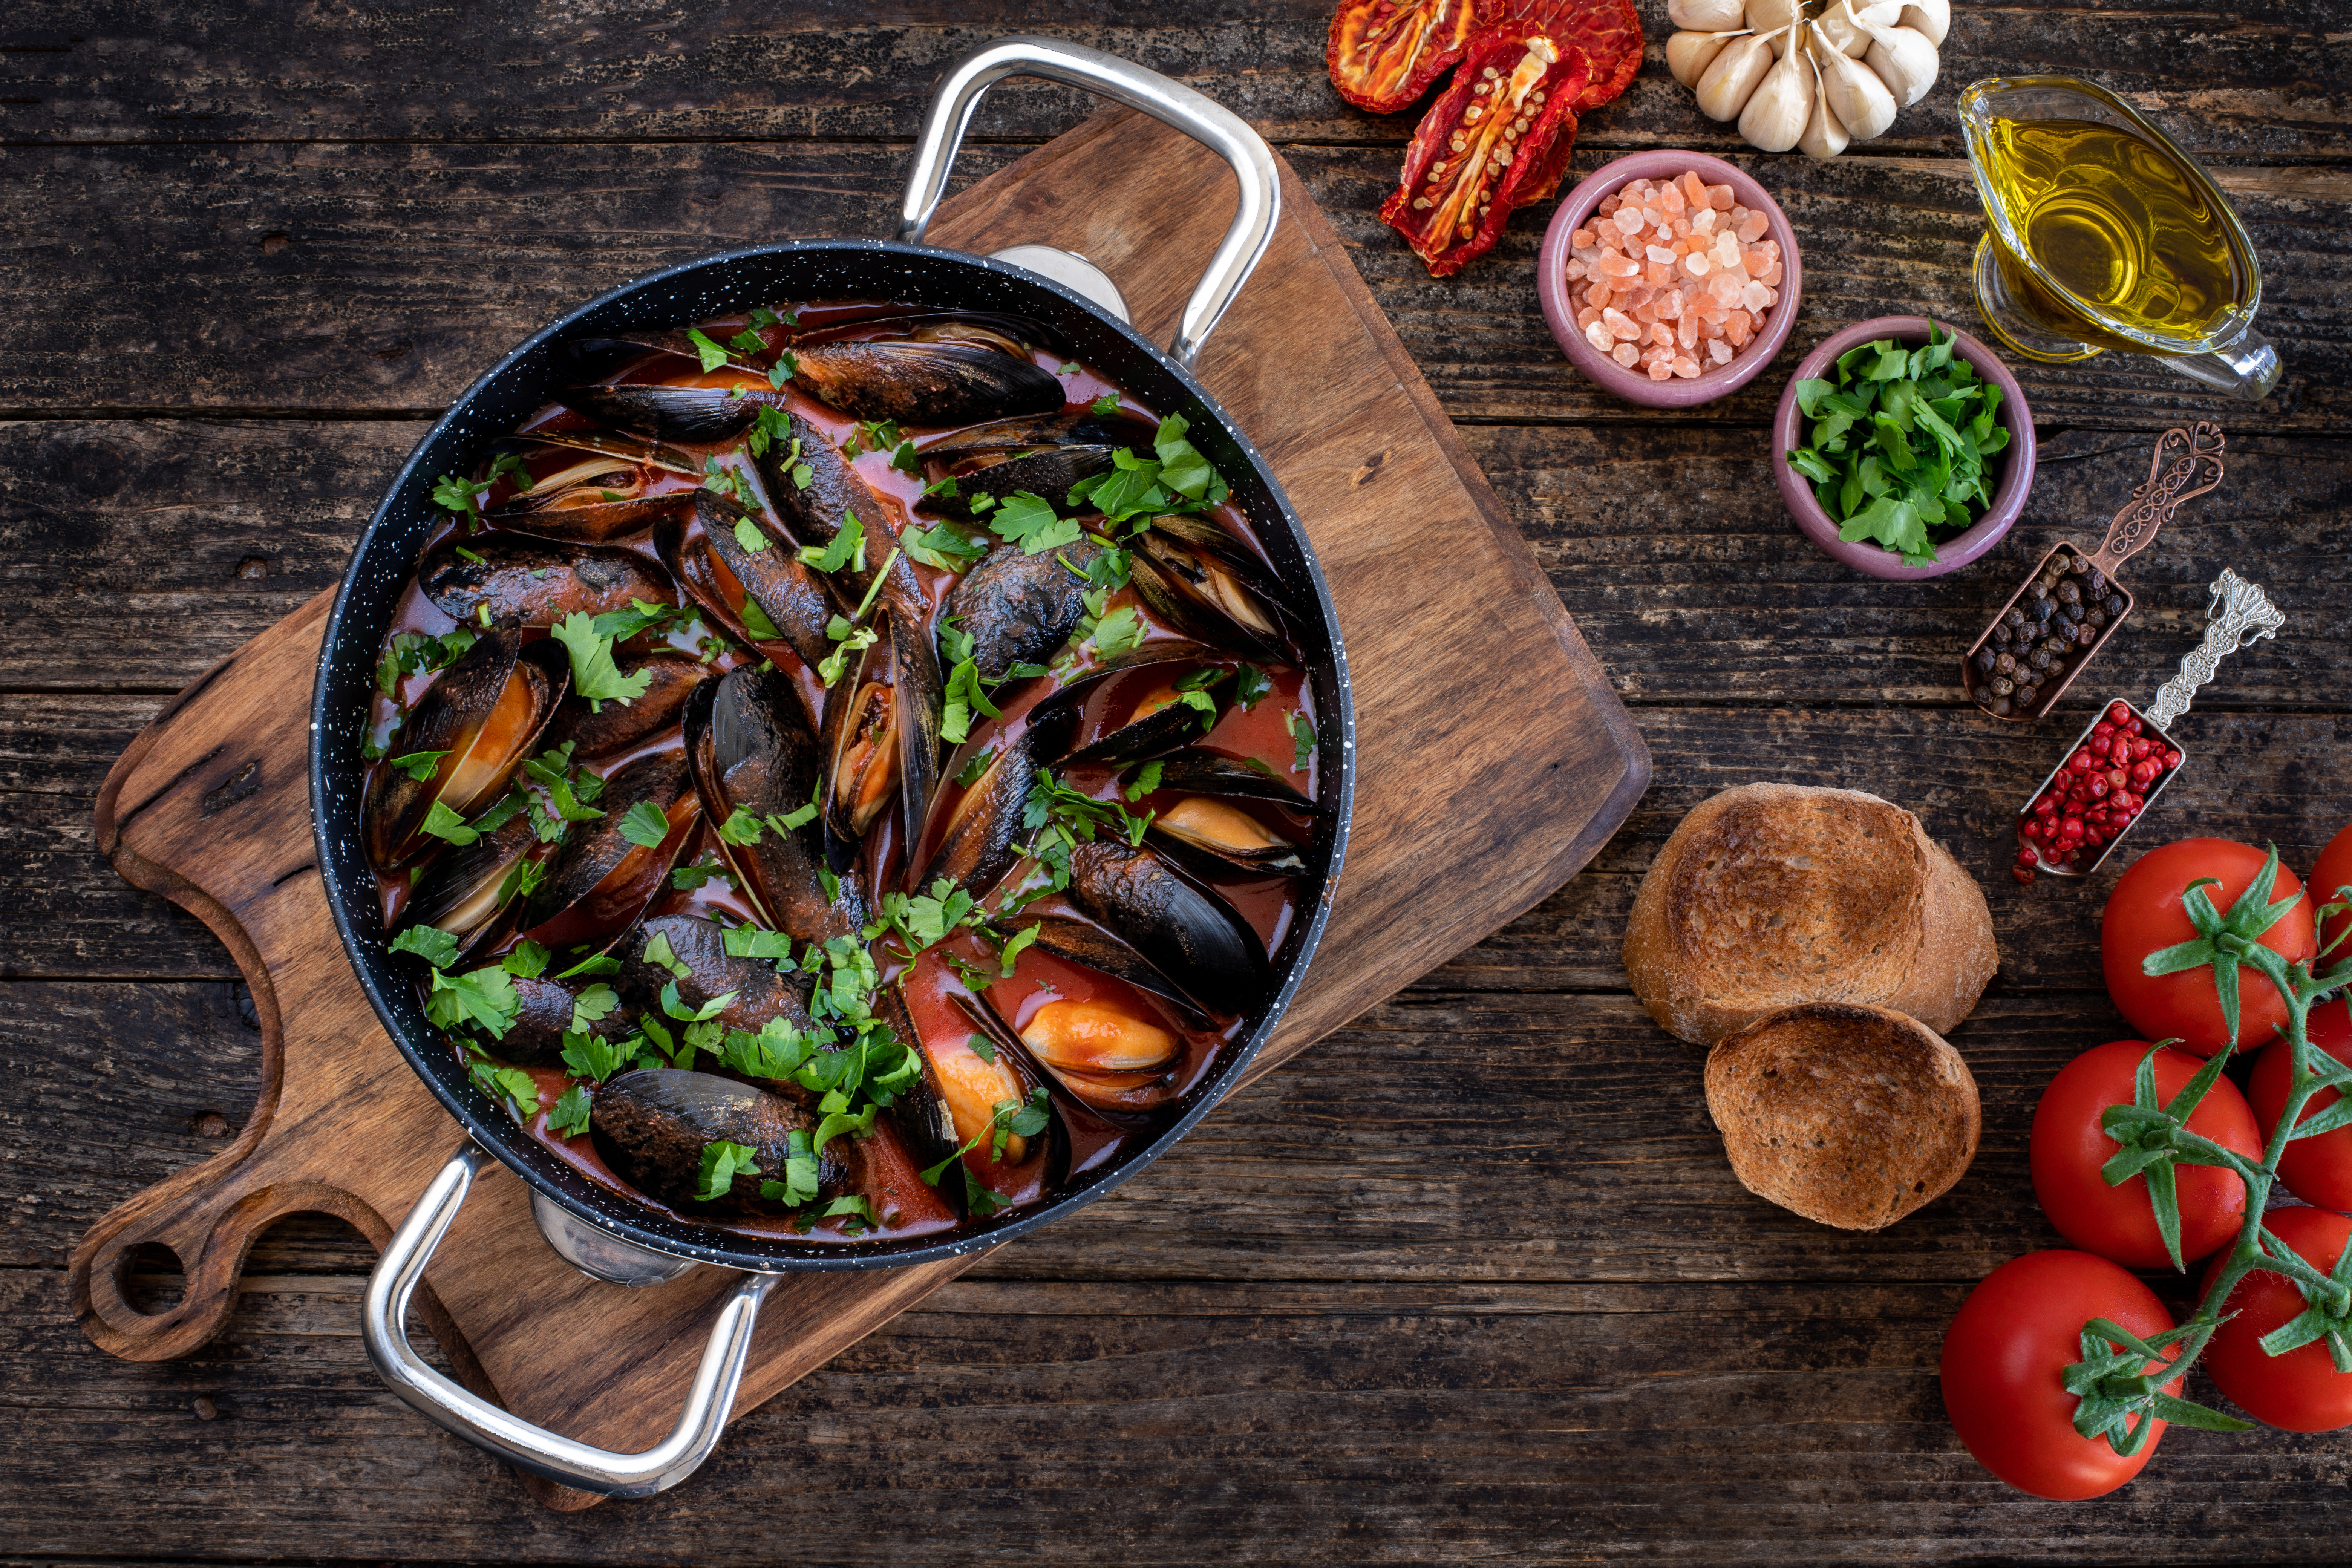 Moules,Mariniere,,Chowder,,Bouillabaisse,And,Steamed,Mussels,On,The,Table